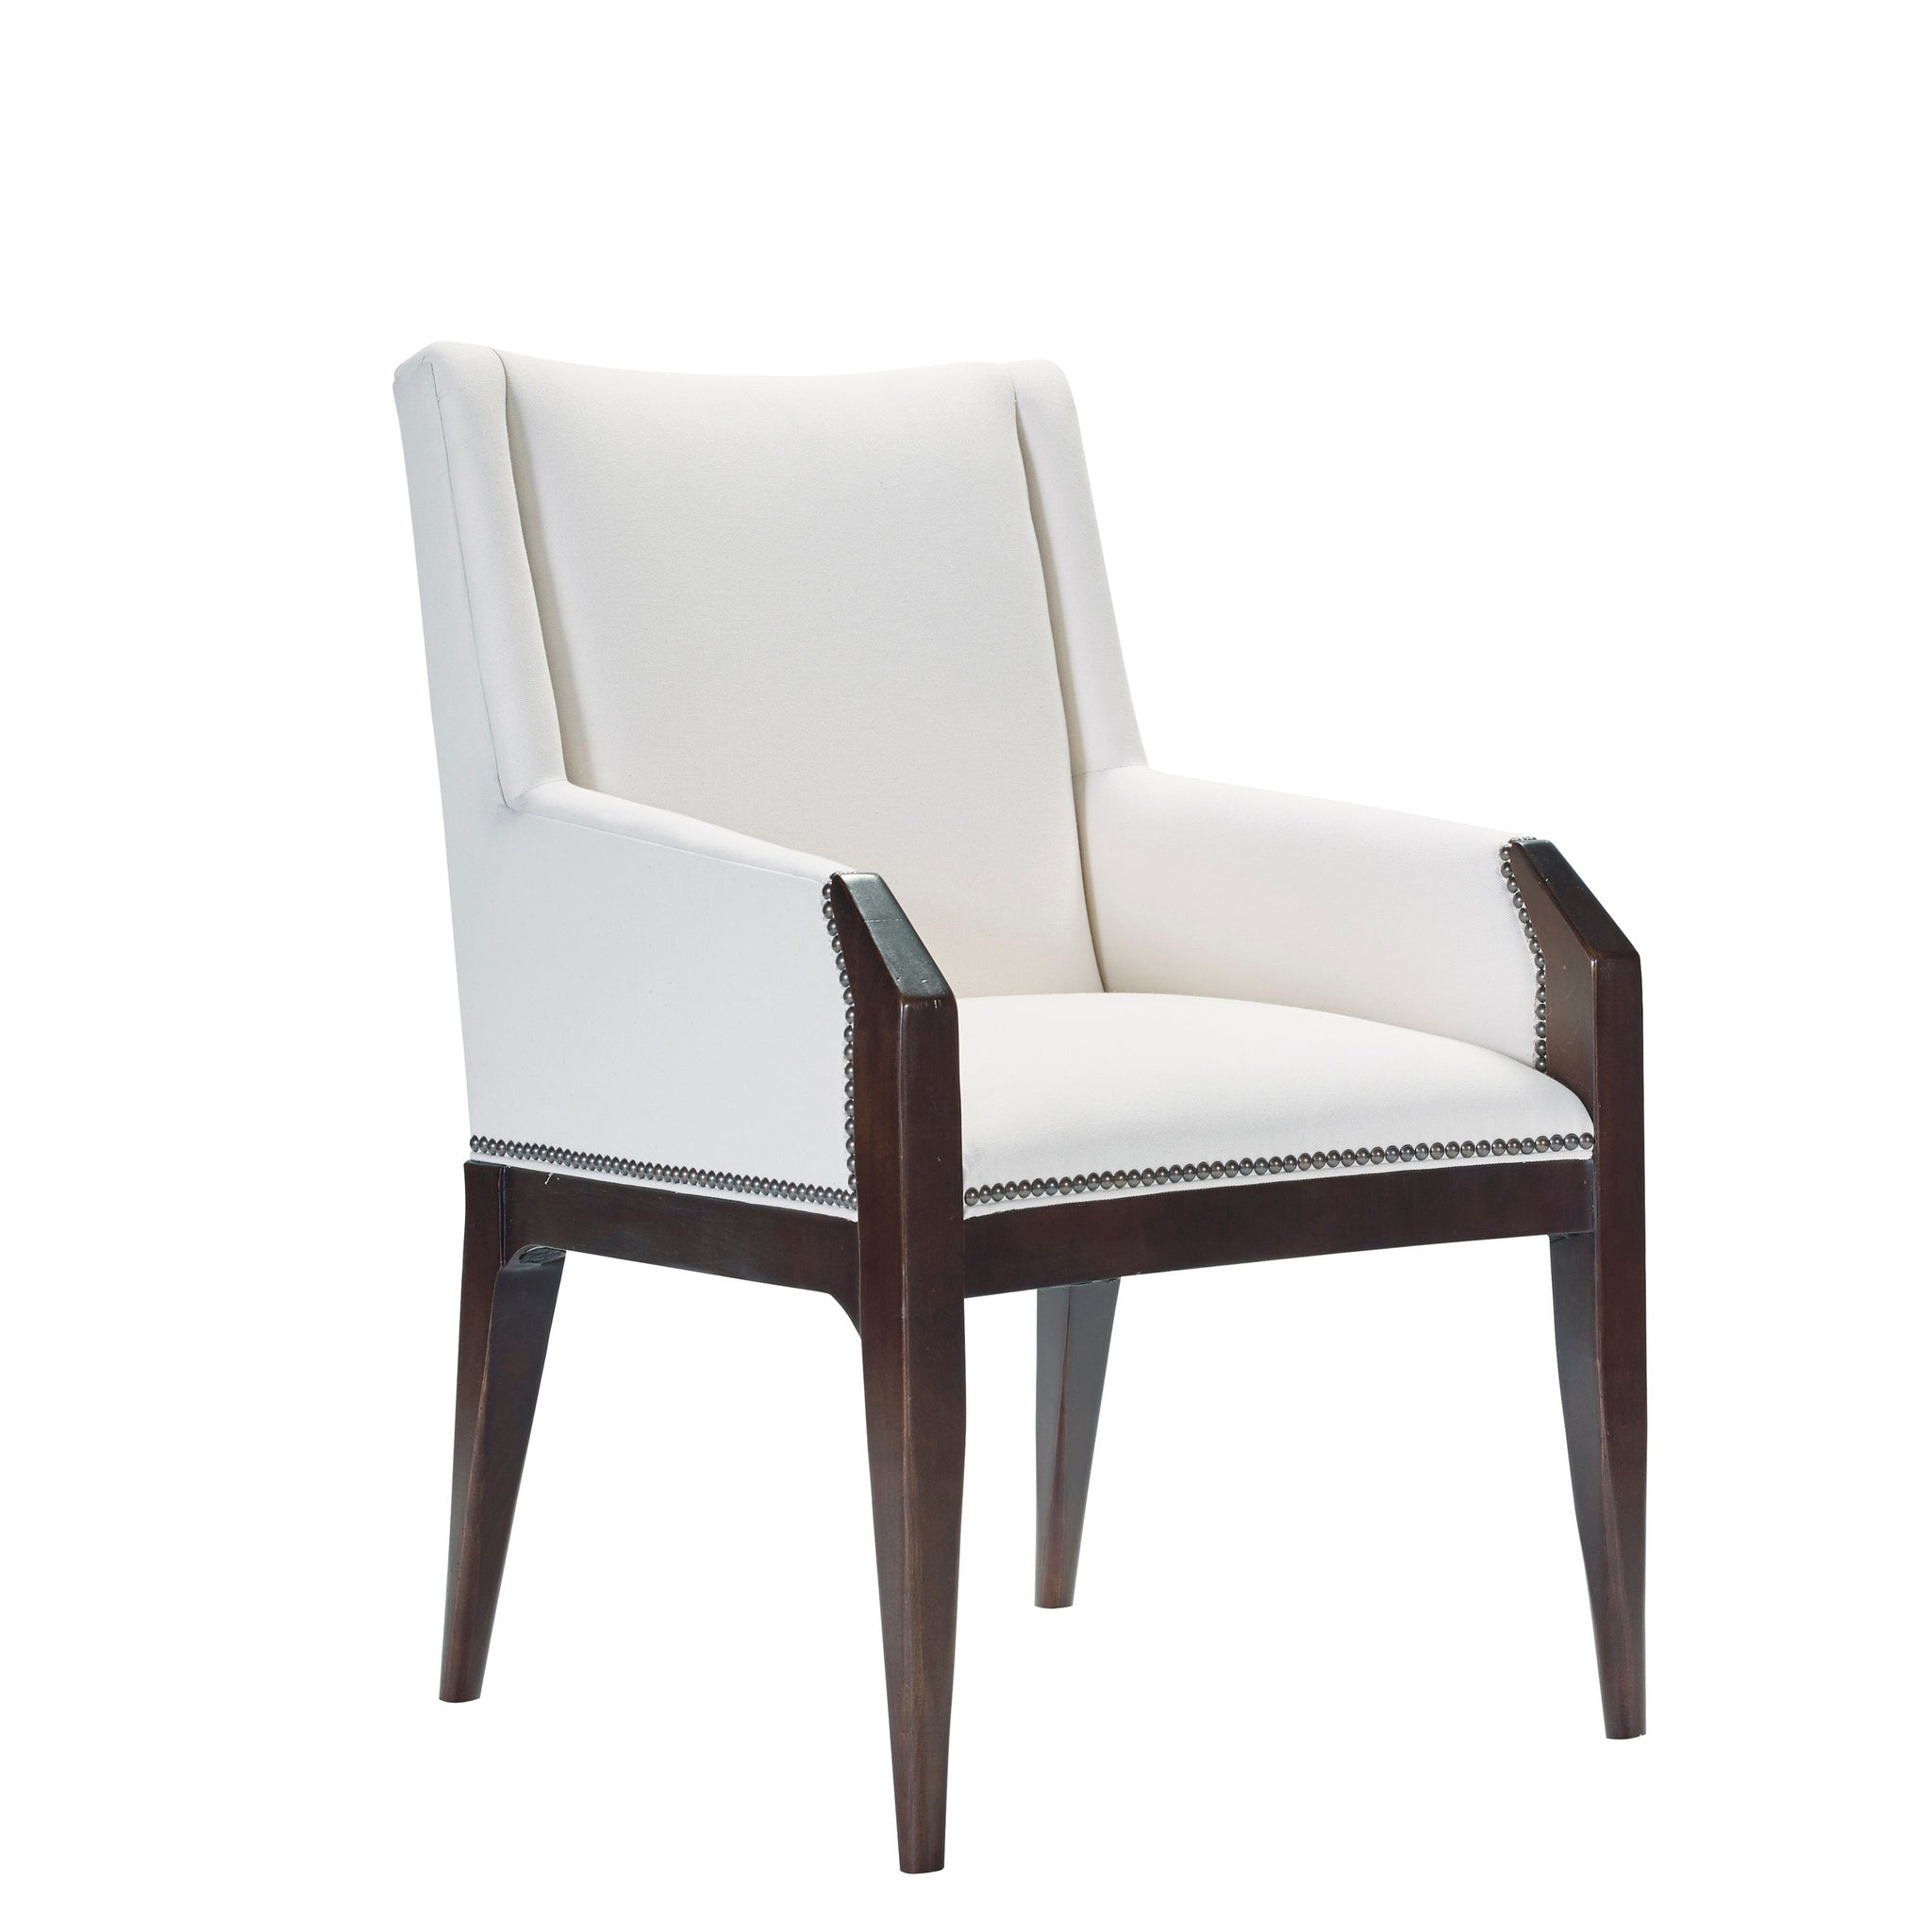 Tate Arm Chair in neutral